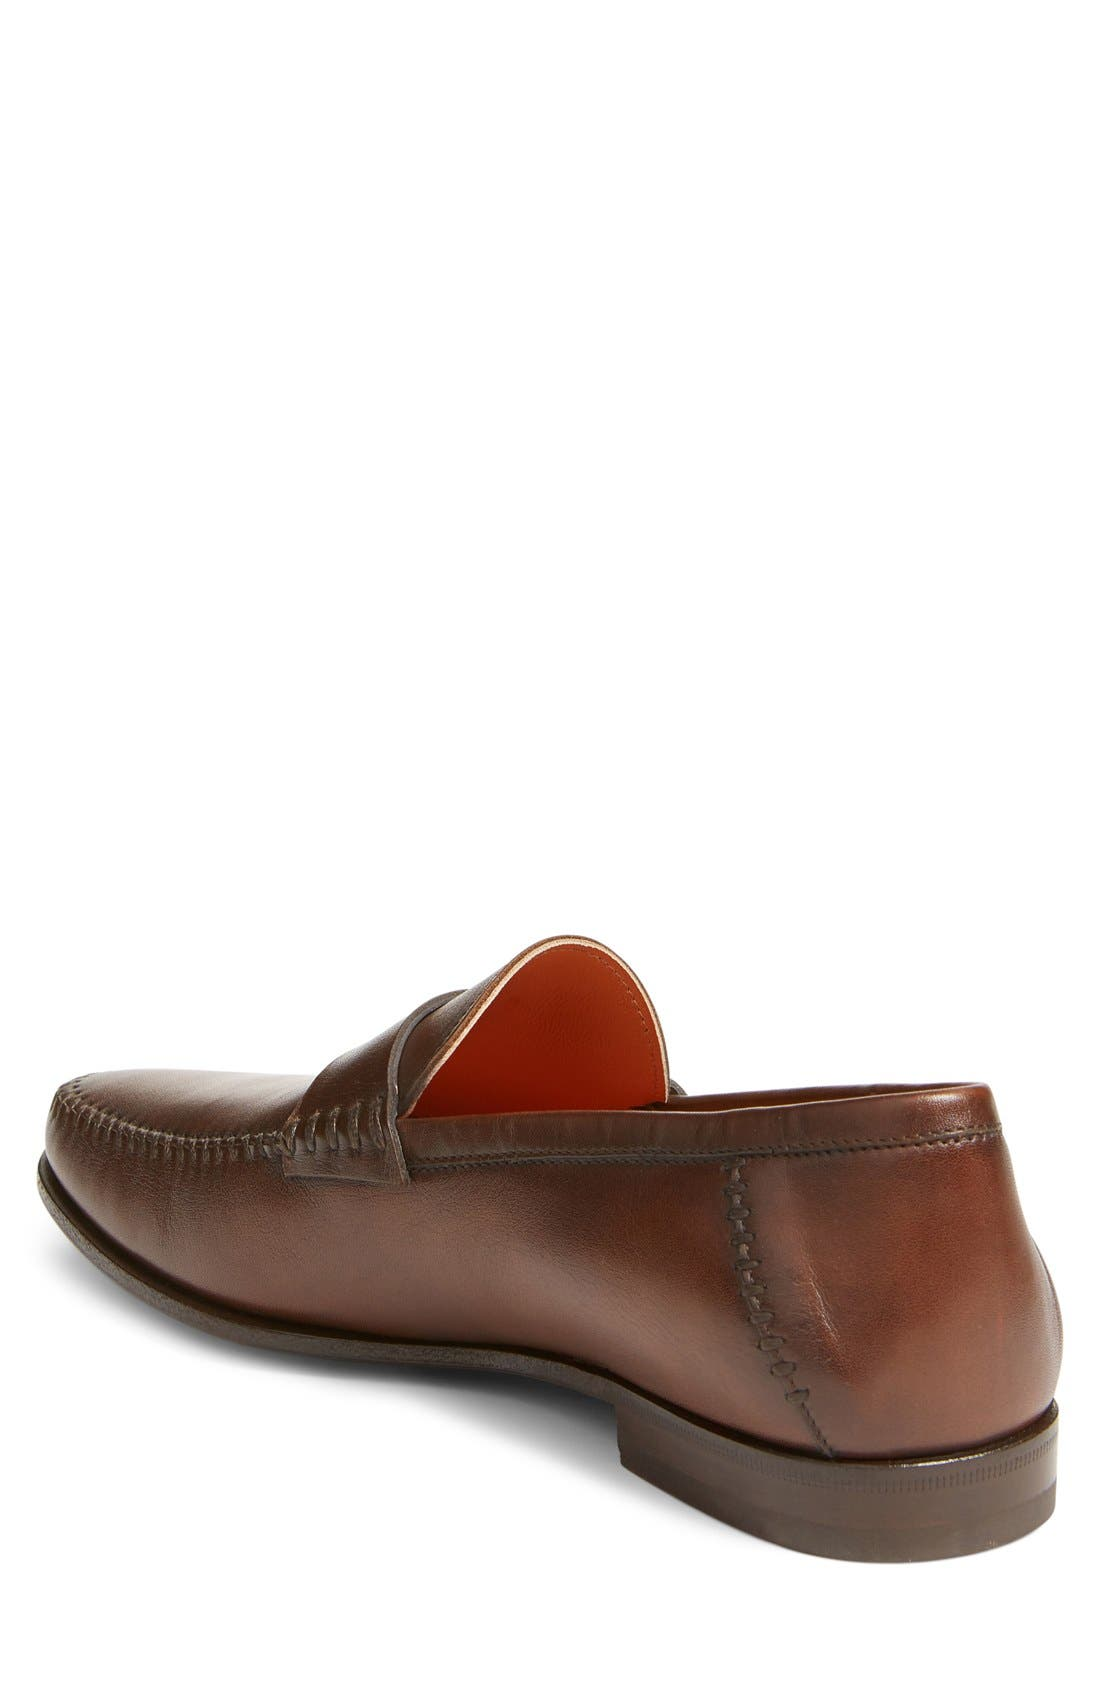 Alternate Image 2  - Santoni 'Paine' Loafer